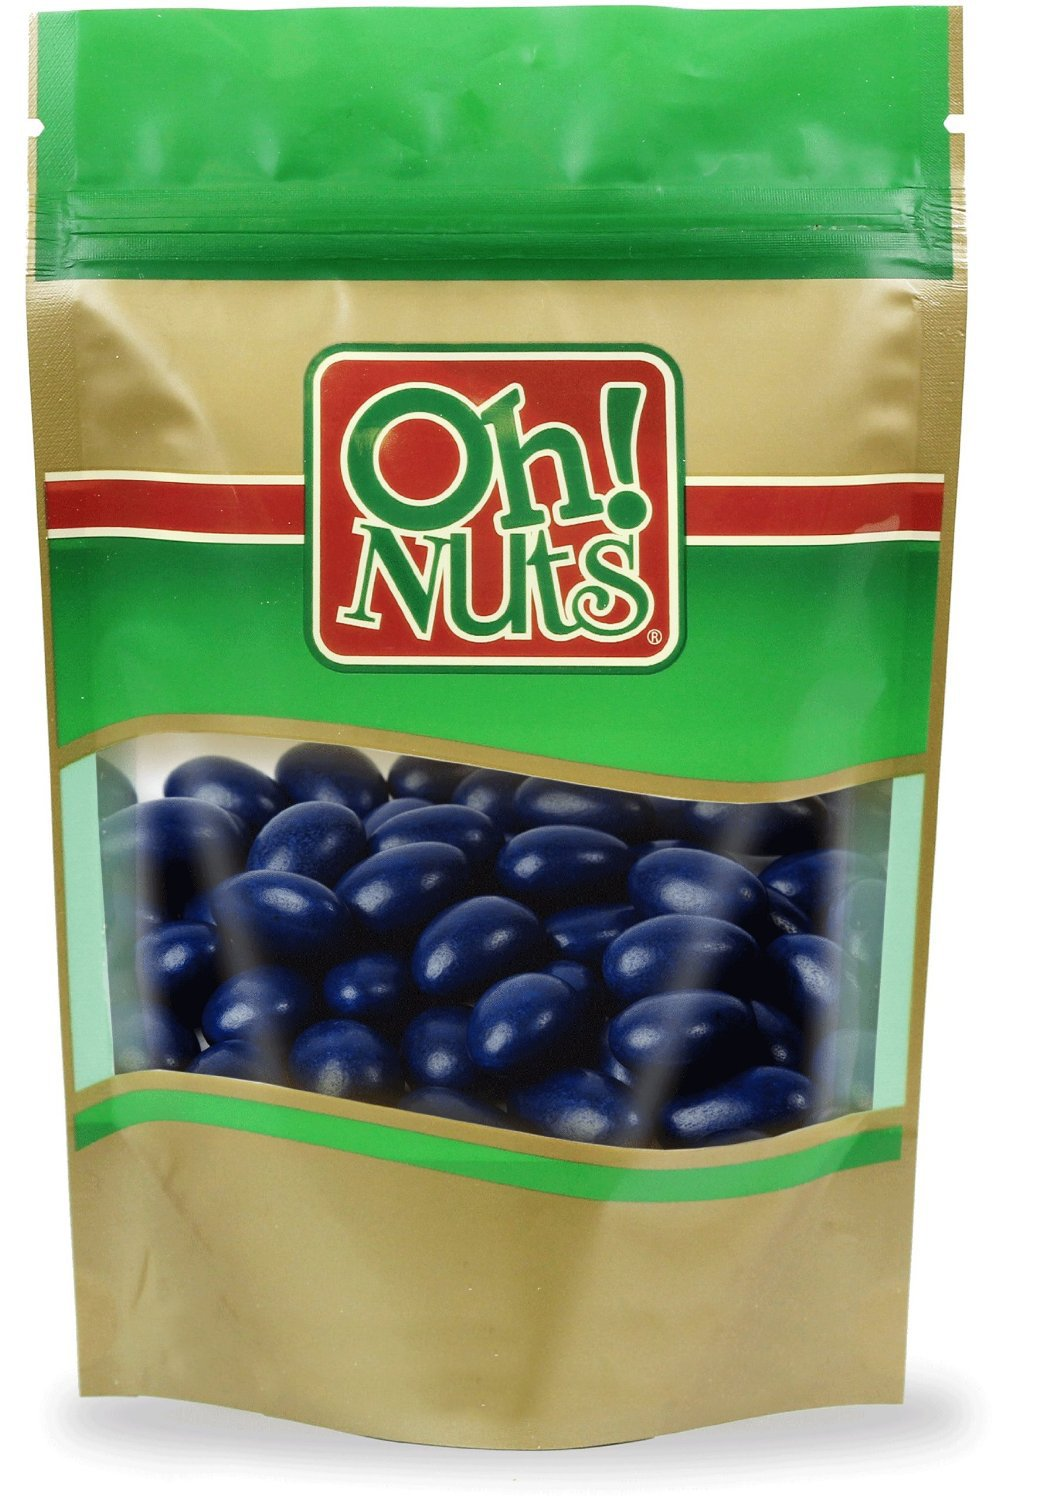 Jordan Almonds Navy Blue Candy, Candied Almonds Dark Blue- Oh! Nuts (5 LB Box Super Fine Jordan Almonds) by Oh! Nuts®